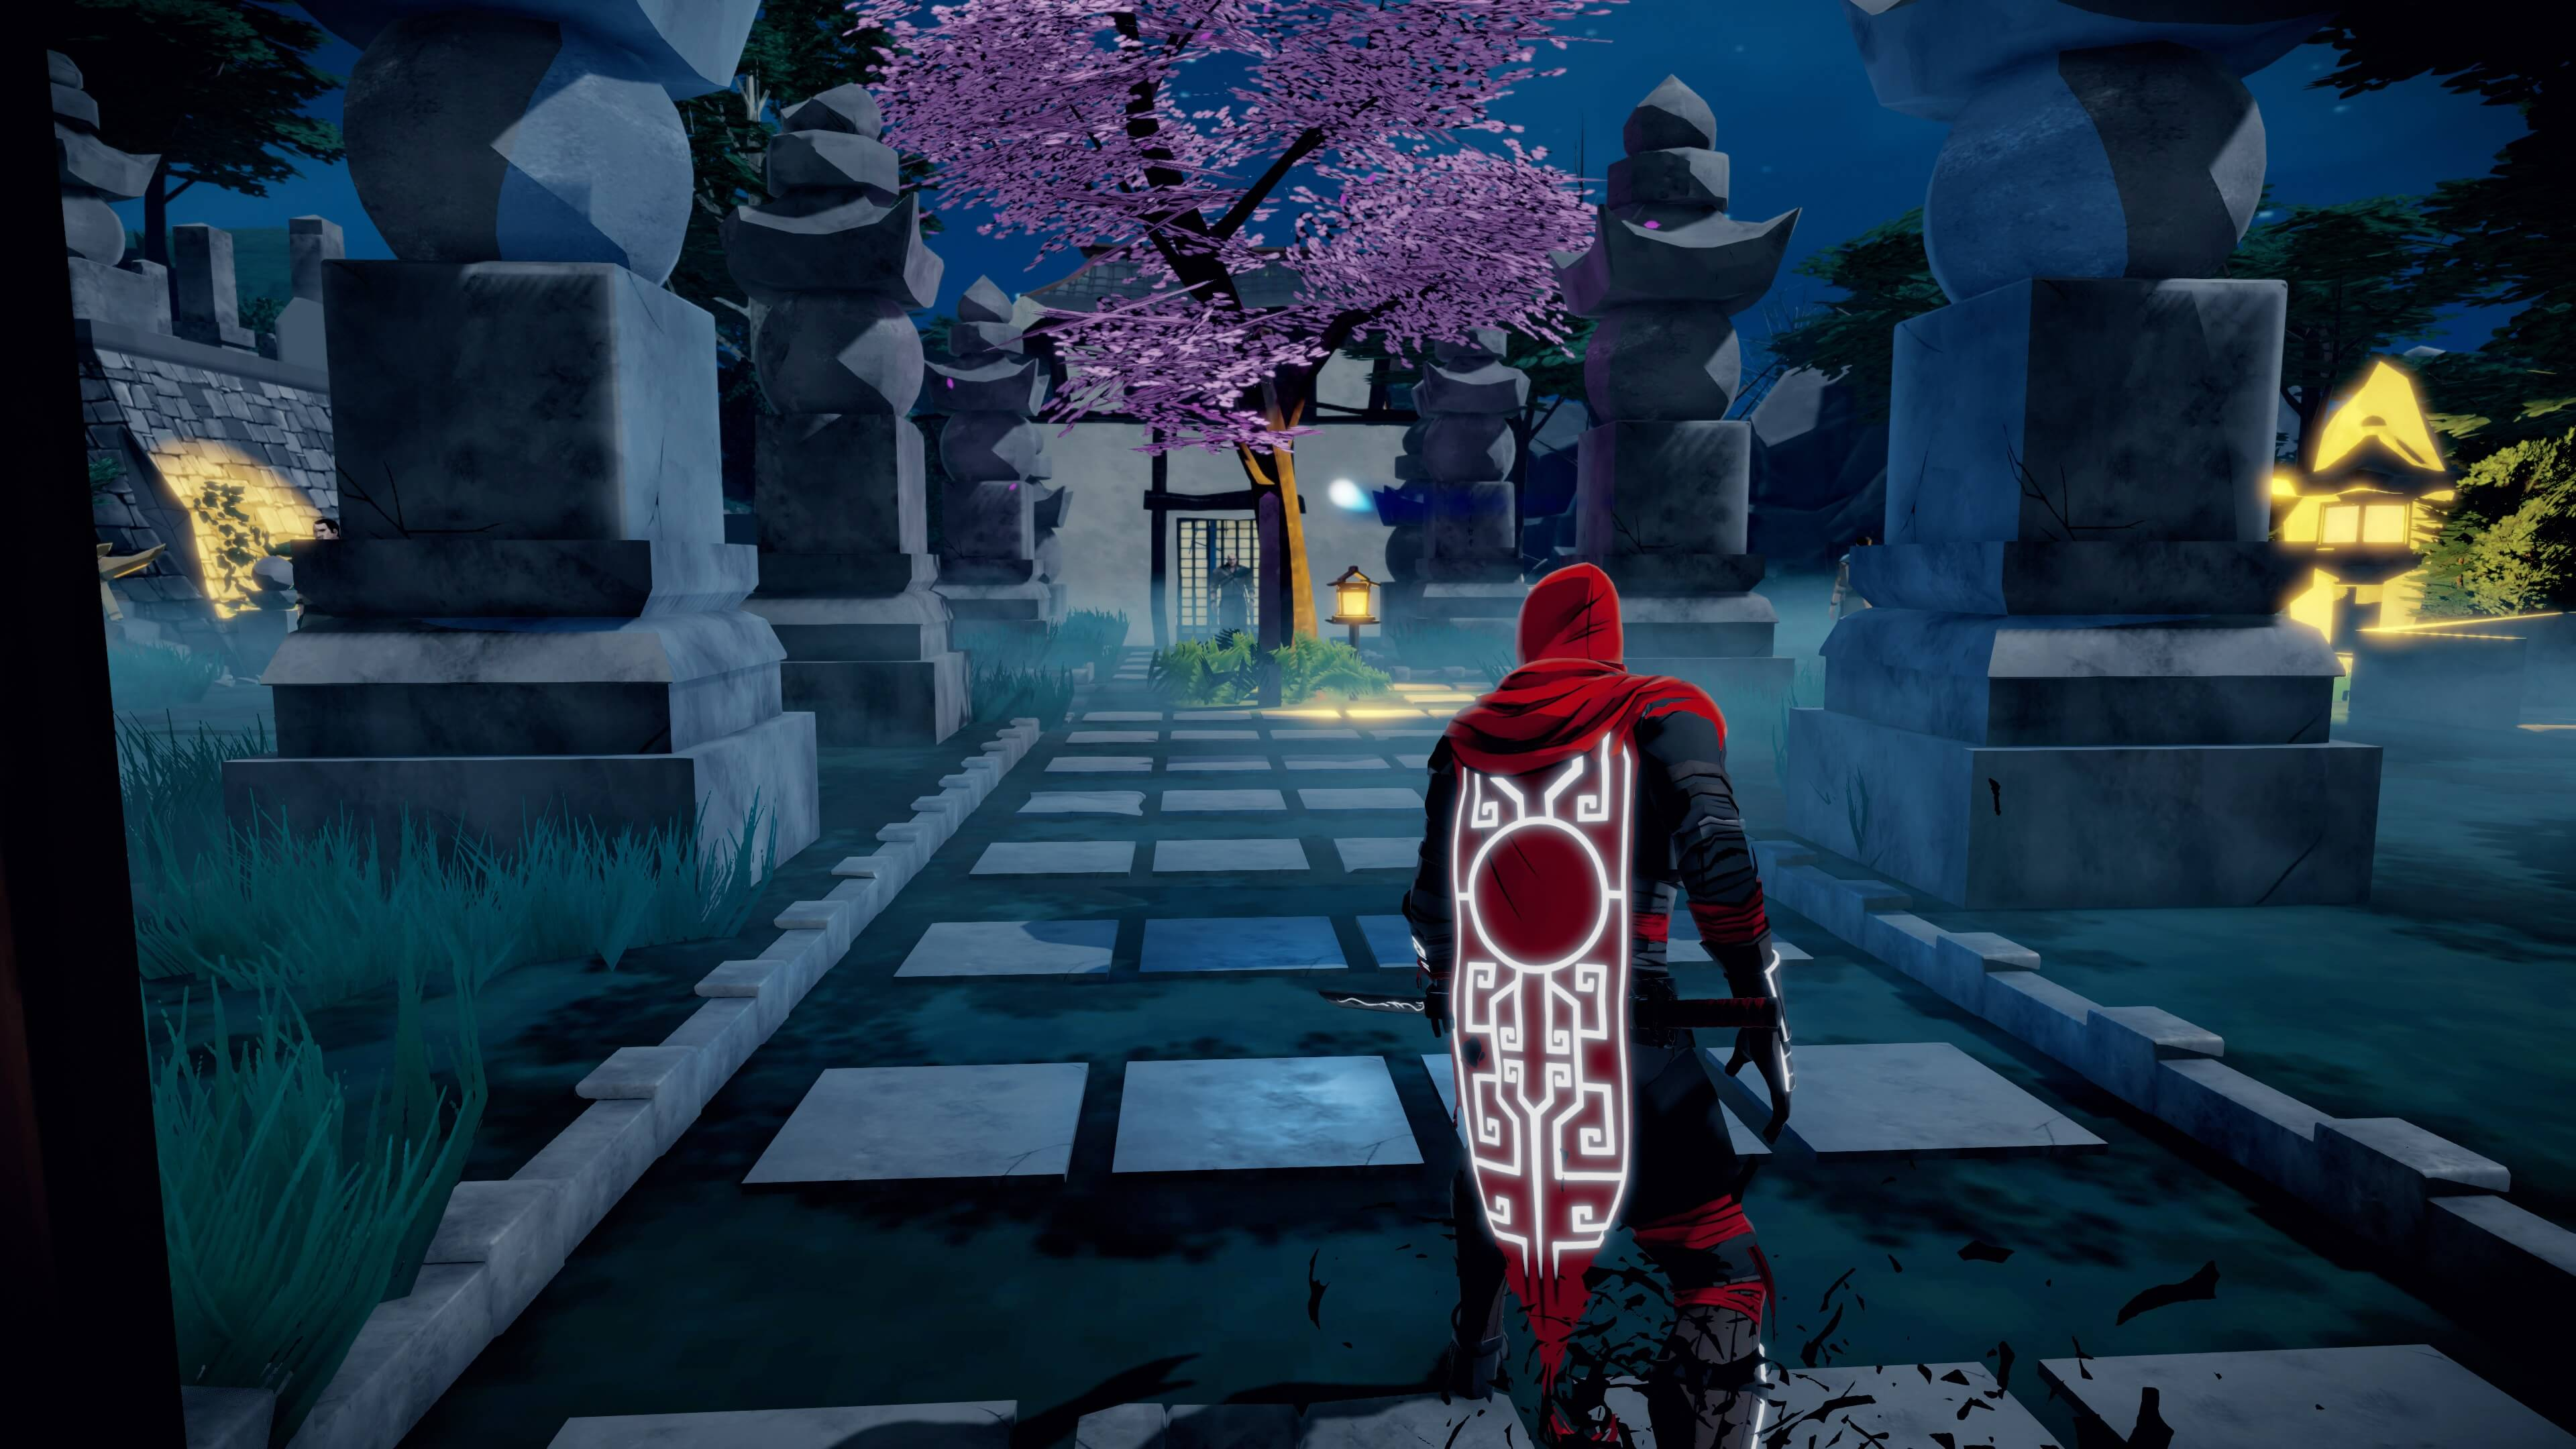 Análisis de 'Aragami Shadow Edition' (Nintendo Switch), de Lince Works - Apartado visual